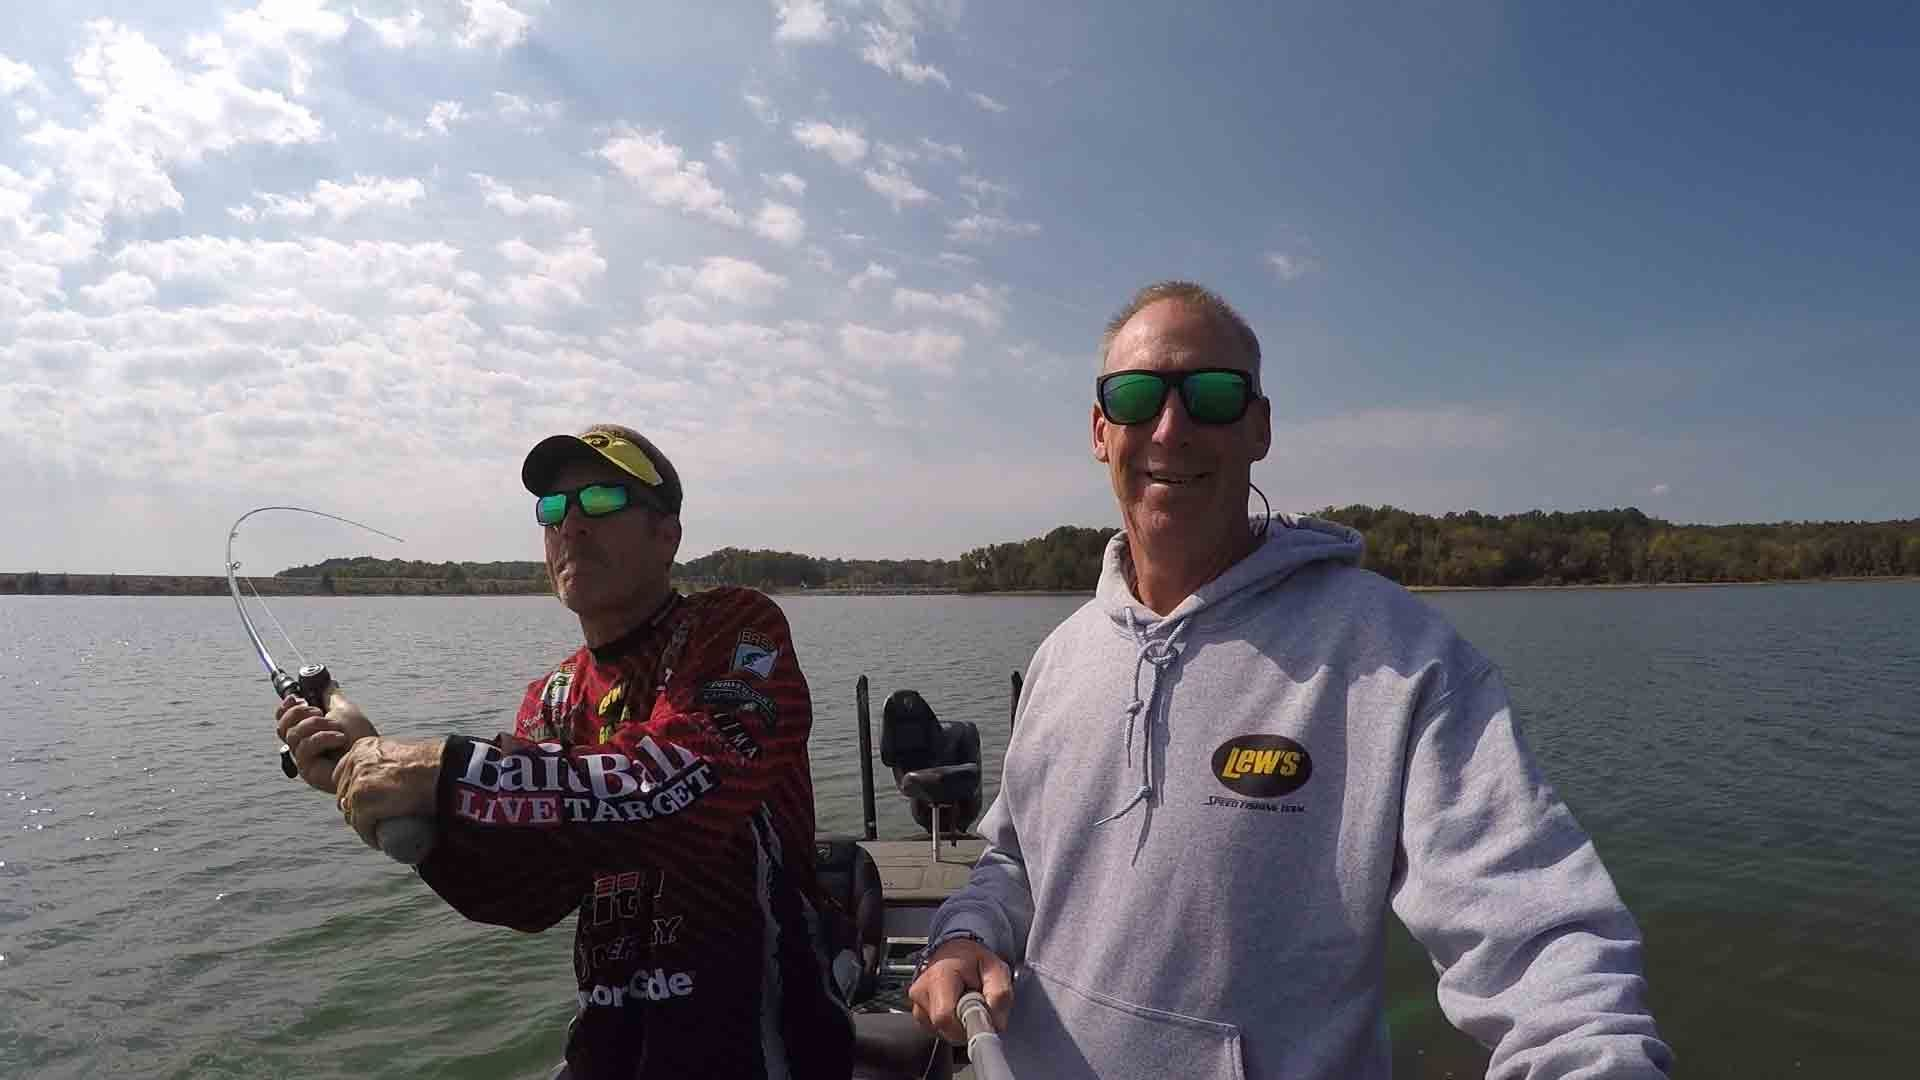 Lew's Pro Stephen Browning on matching line size to reel